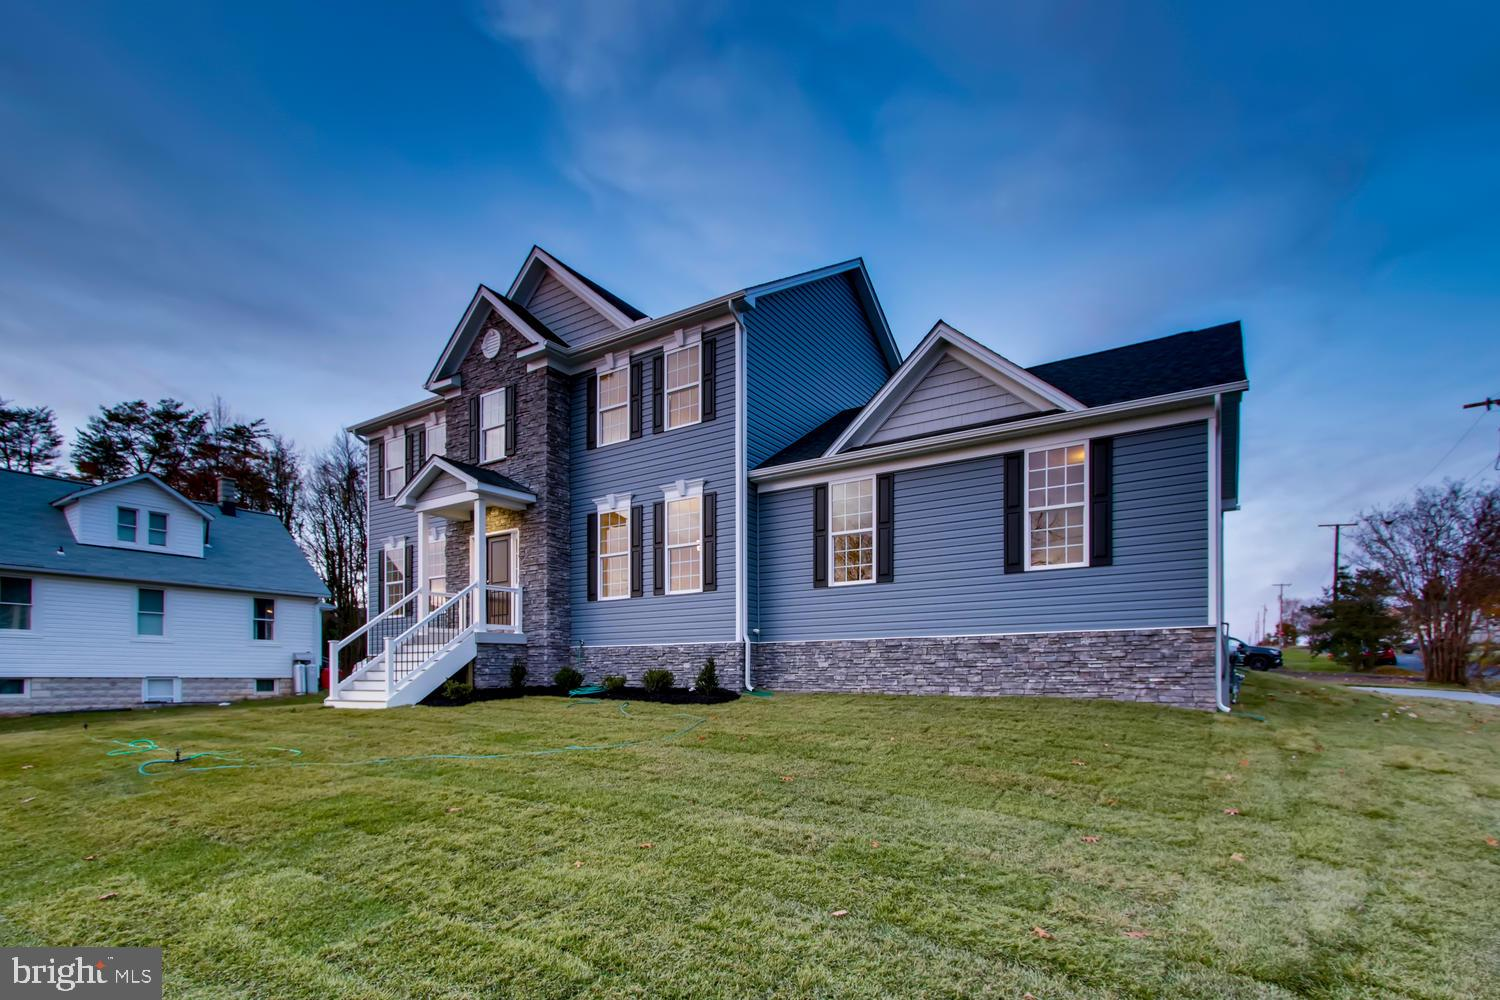 5110 E JOPPA ROAD, PERRY HALL, MD 21128